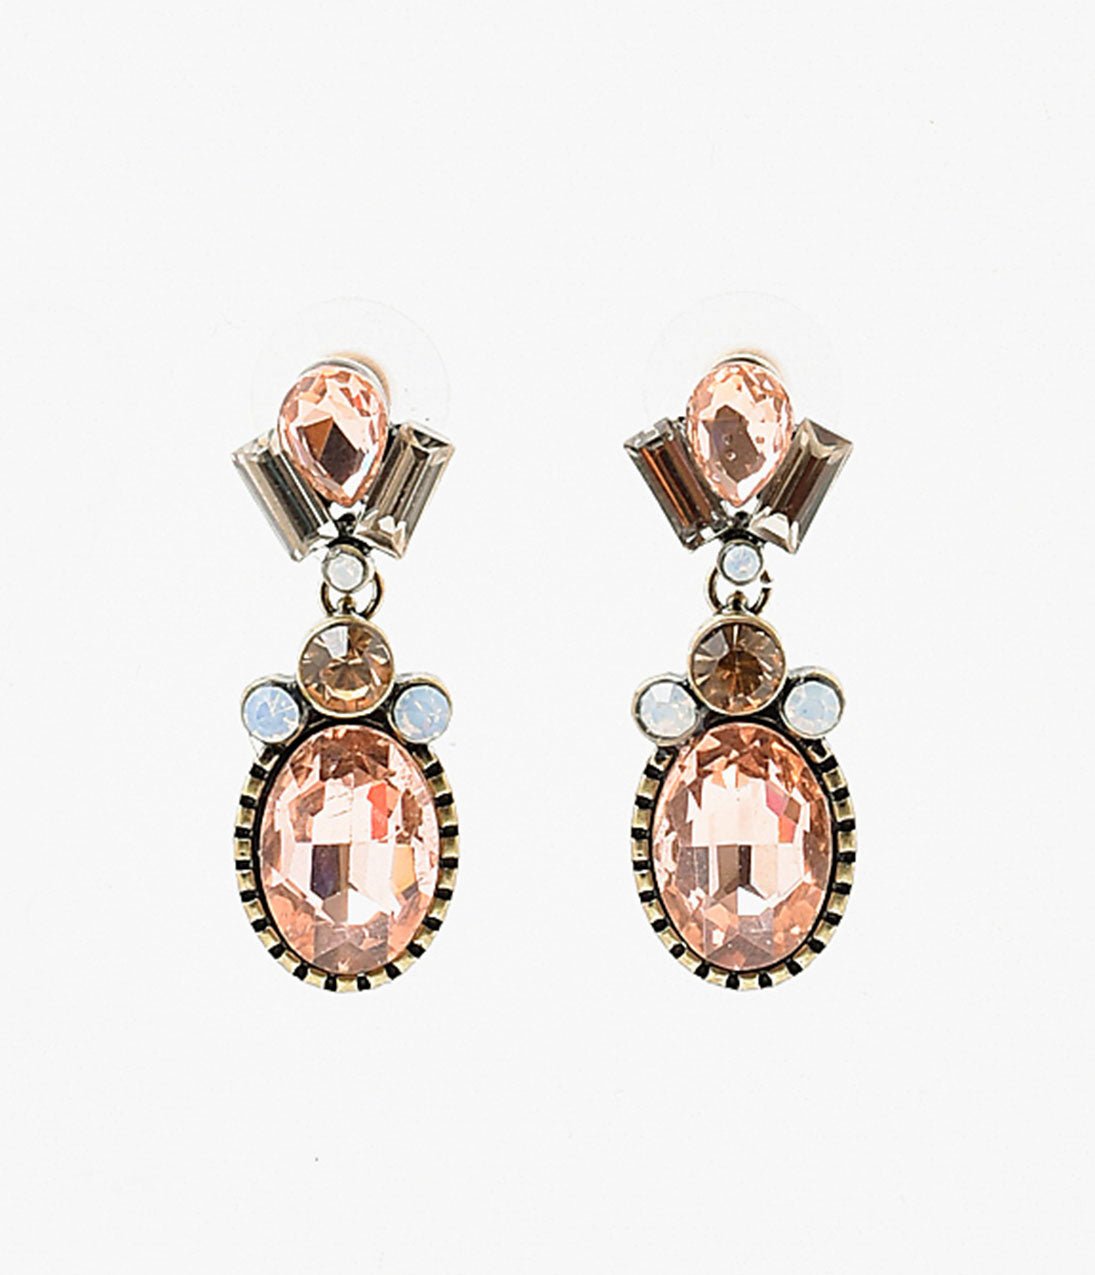 1930s Jewelry | Art Deco Style Jewelry Peach Rhinestone  Antique Bronze Deco Drop Earrings $14.00 AT vintagedancer.com